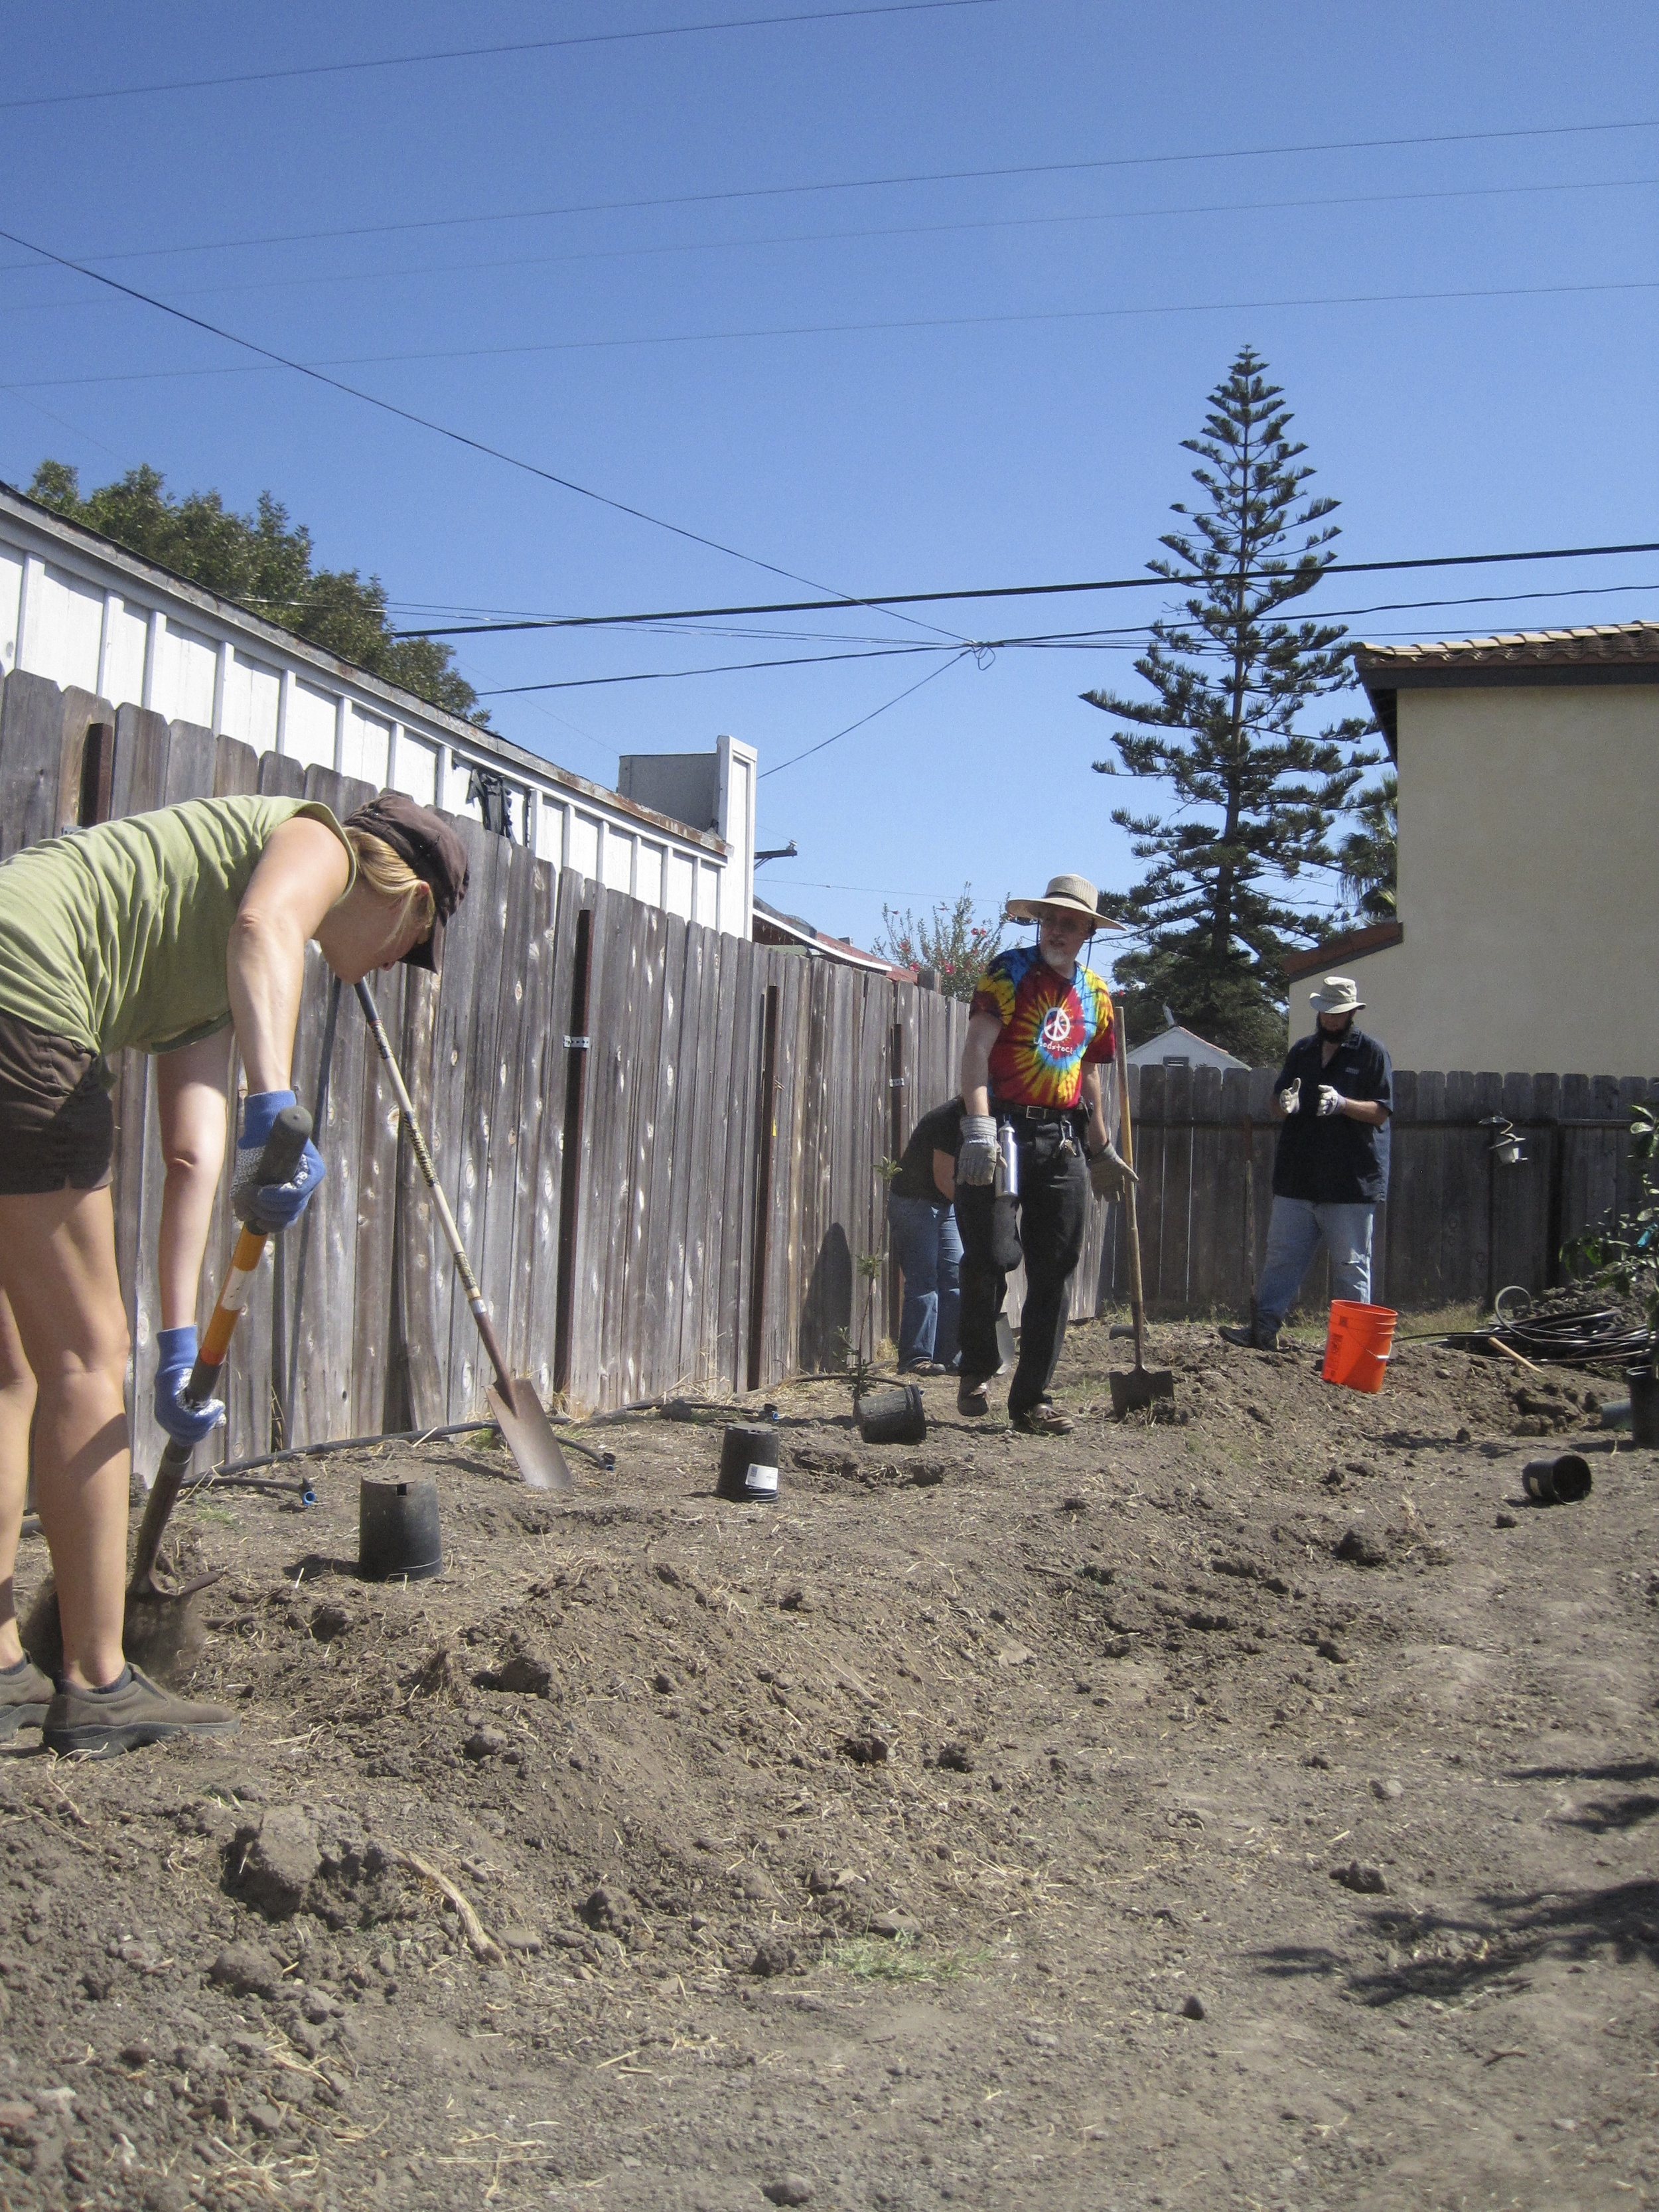 This space was empty when we started.  After our workshop 6 trees were planted and abundance was created!